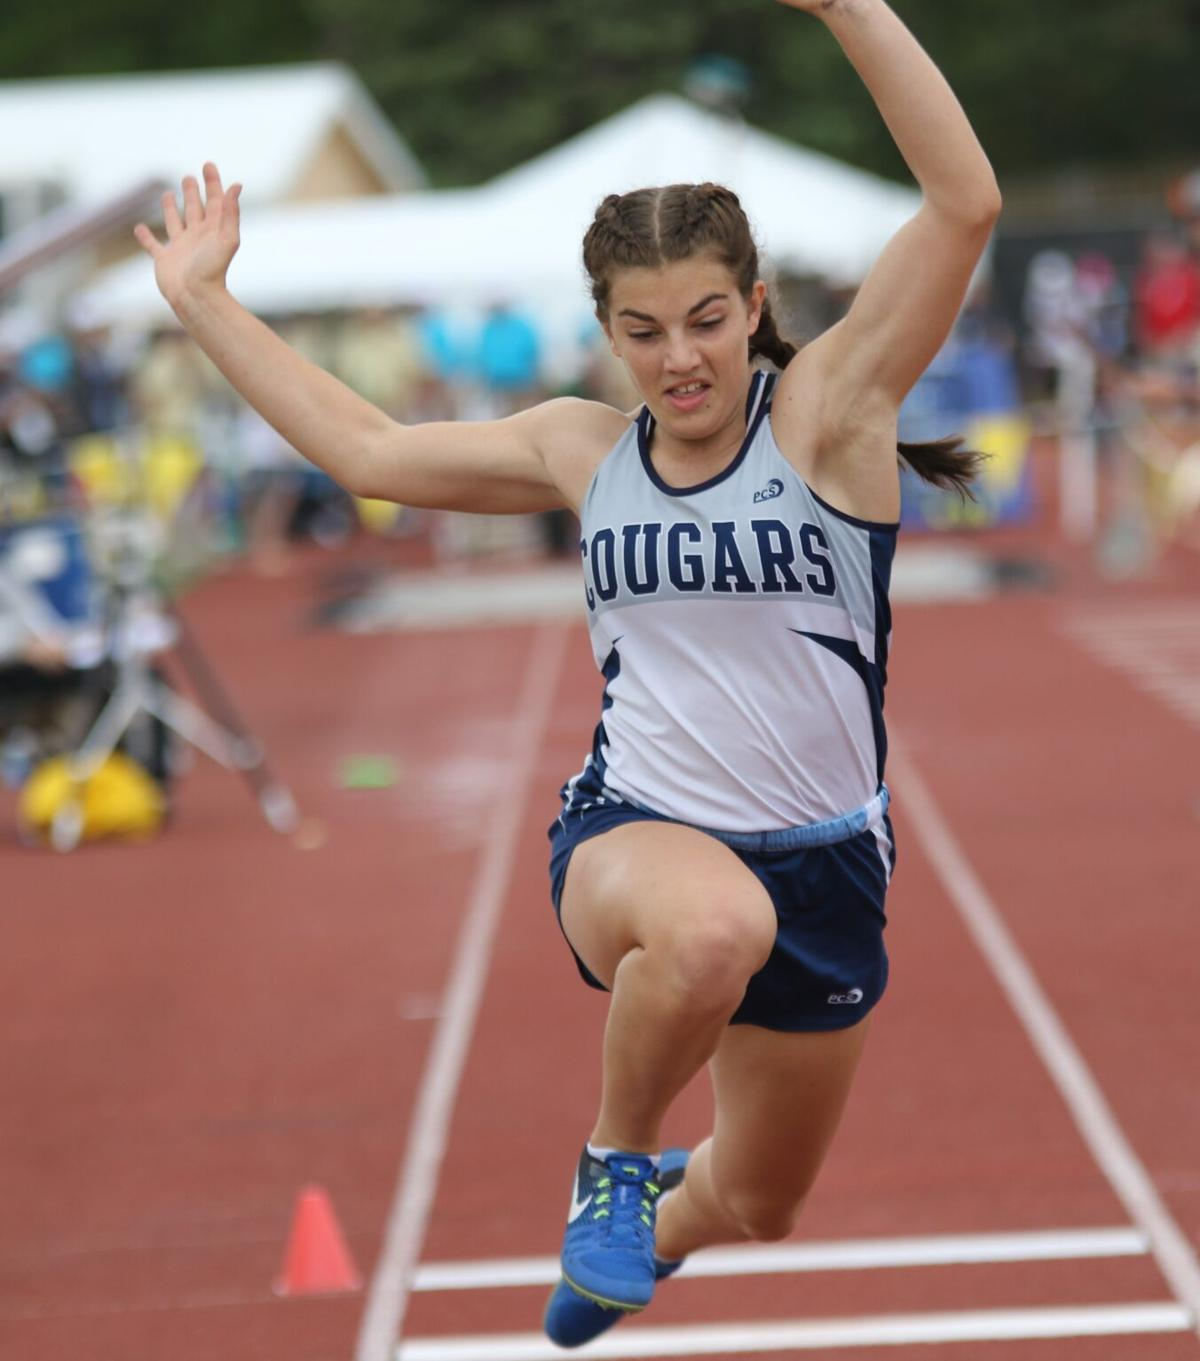 Josi Noble takes on four events for Cougars at state